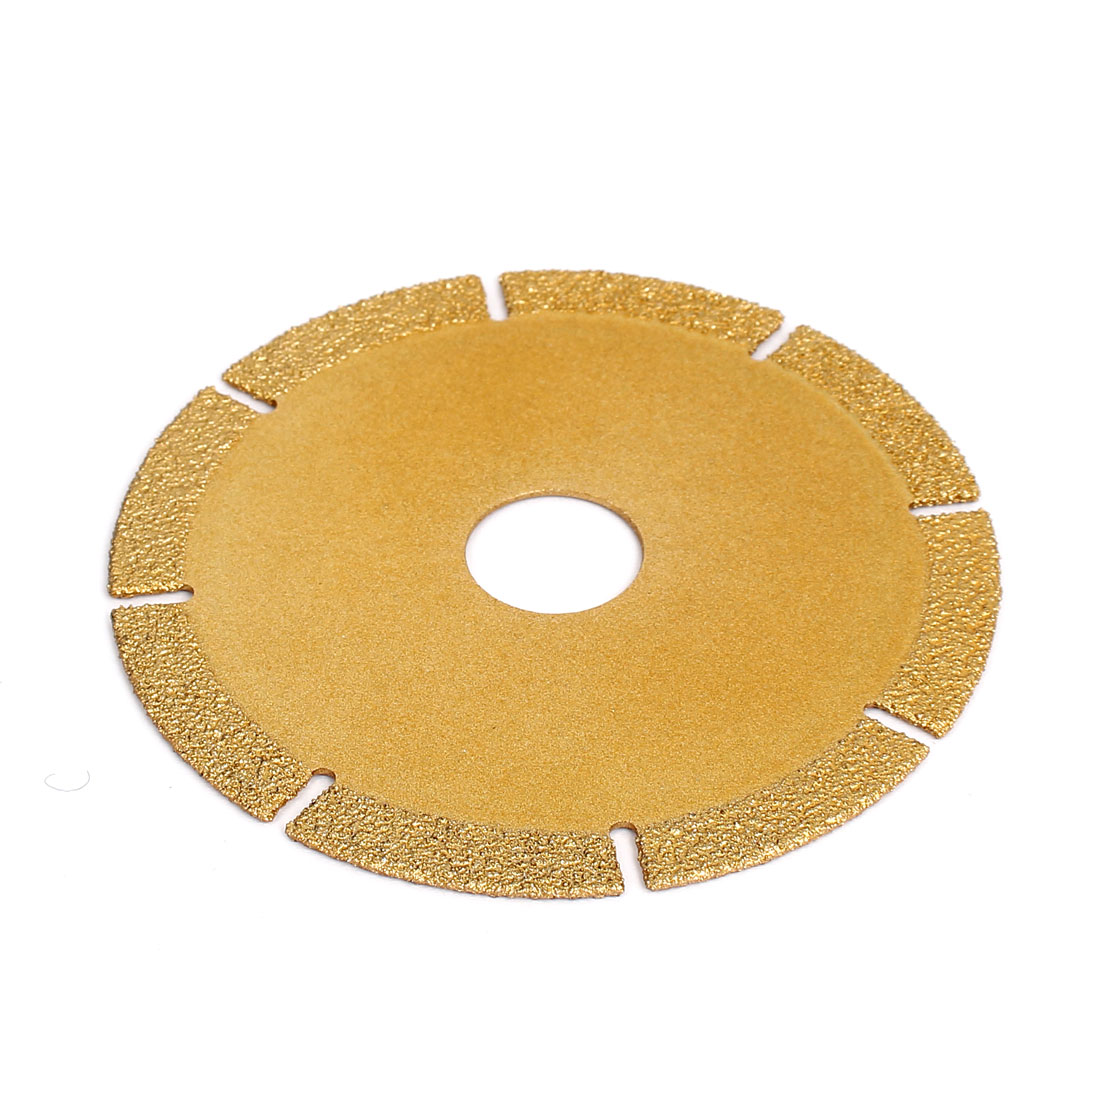 100mm Diameter 2mm Thickness Diamond Circular Cutting Saw Cutter